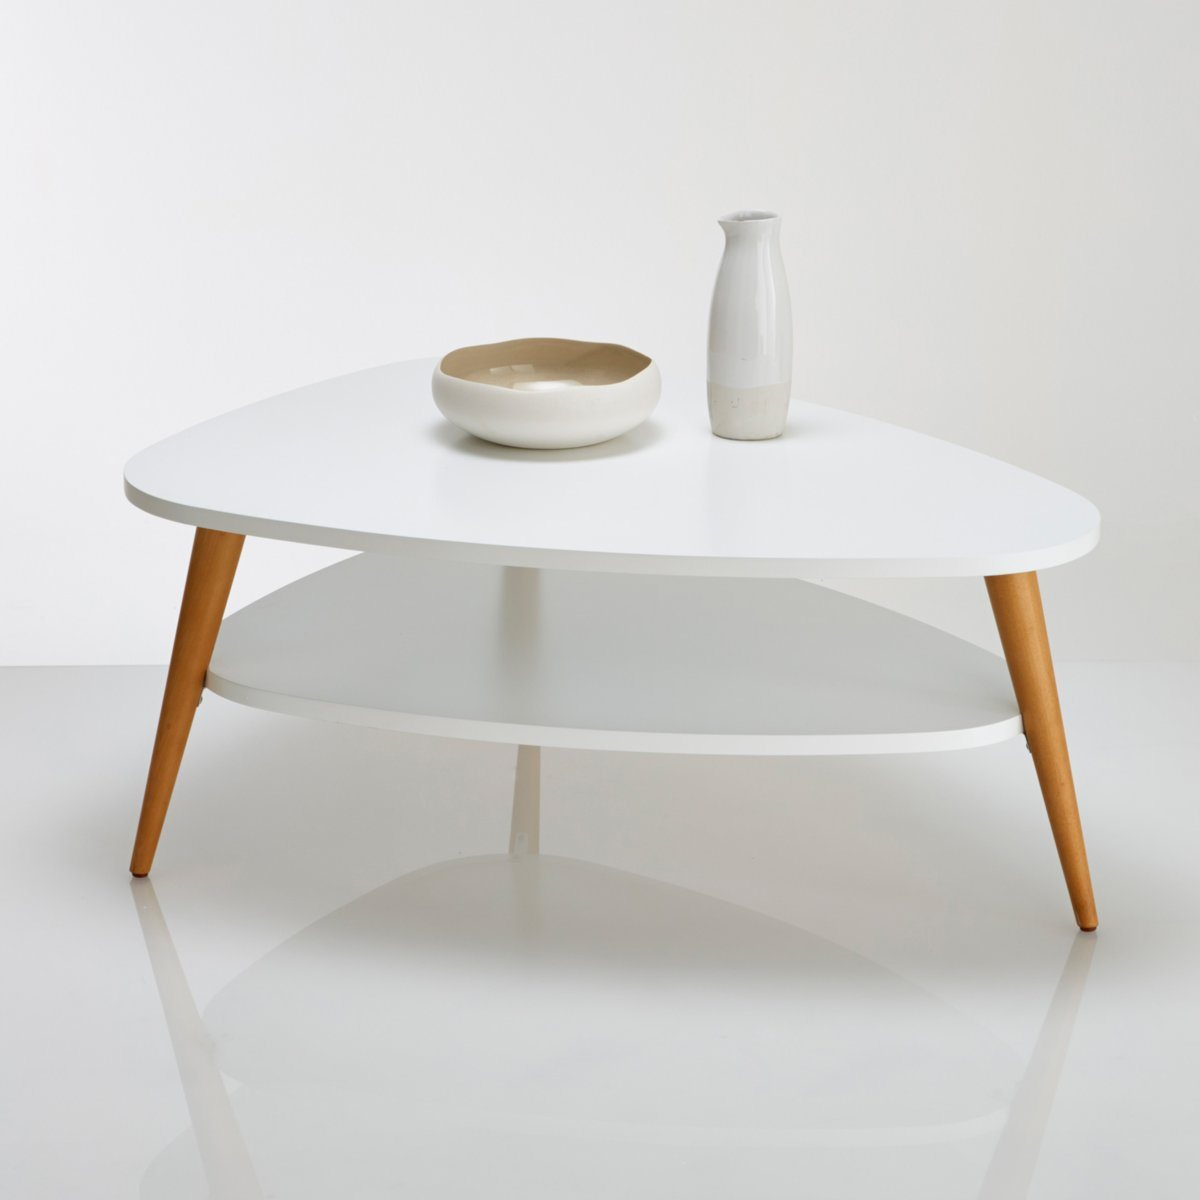 Gifi table basse scandinave